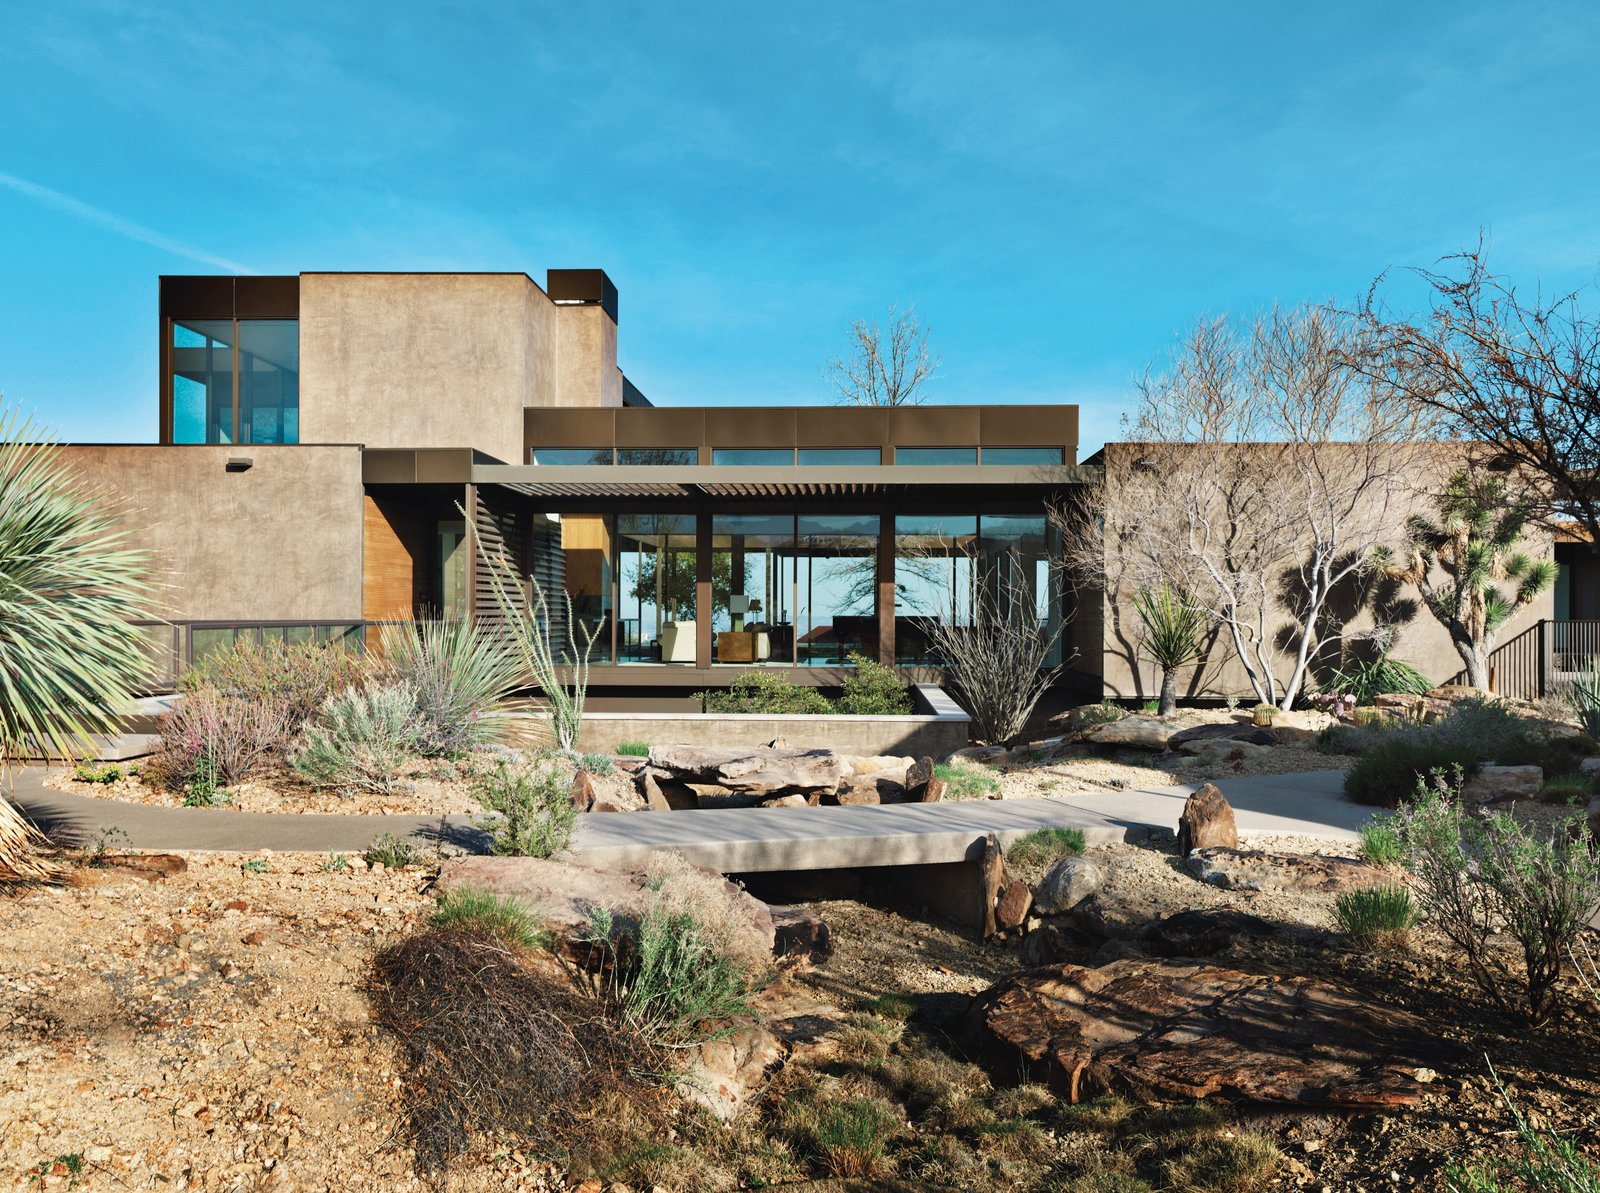 #prefab #outdoor #exterior #outside #modular #structure #modern #modernarchitecture #desert #deserthome #sustainable #ecofriendly #LasVegas #Nevada #MarmolRadziner   Photo by Jill Paider  Photo 14 of 23 in 20 Desert Homes from Prefab